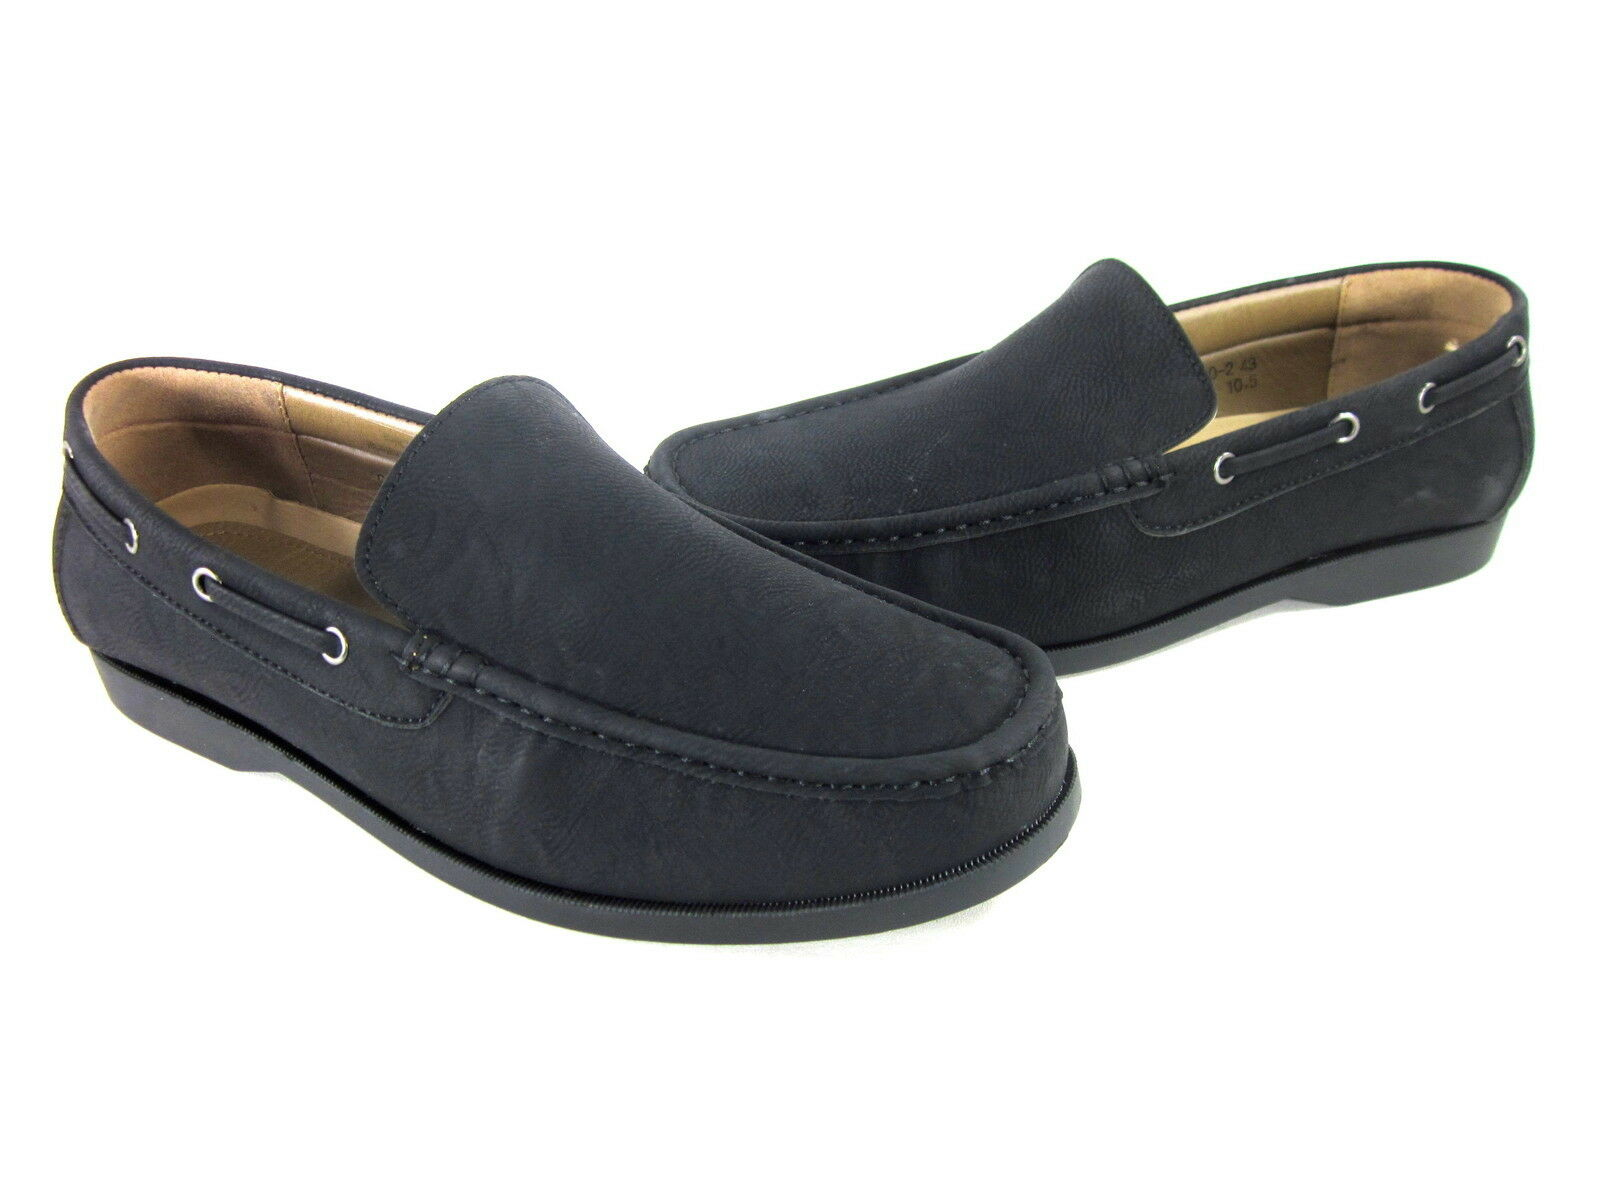 FRANCO BLACK VANUCCI MEN'S GIO SLIP-ON LOAFERS FAUX-LEATHER BLACK FRANCO US SZ 7.5 MEDIUM 85de00